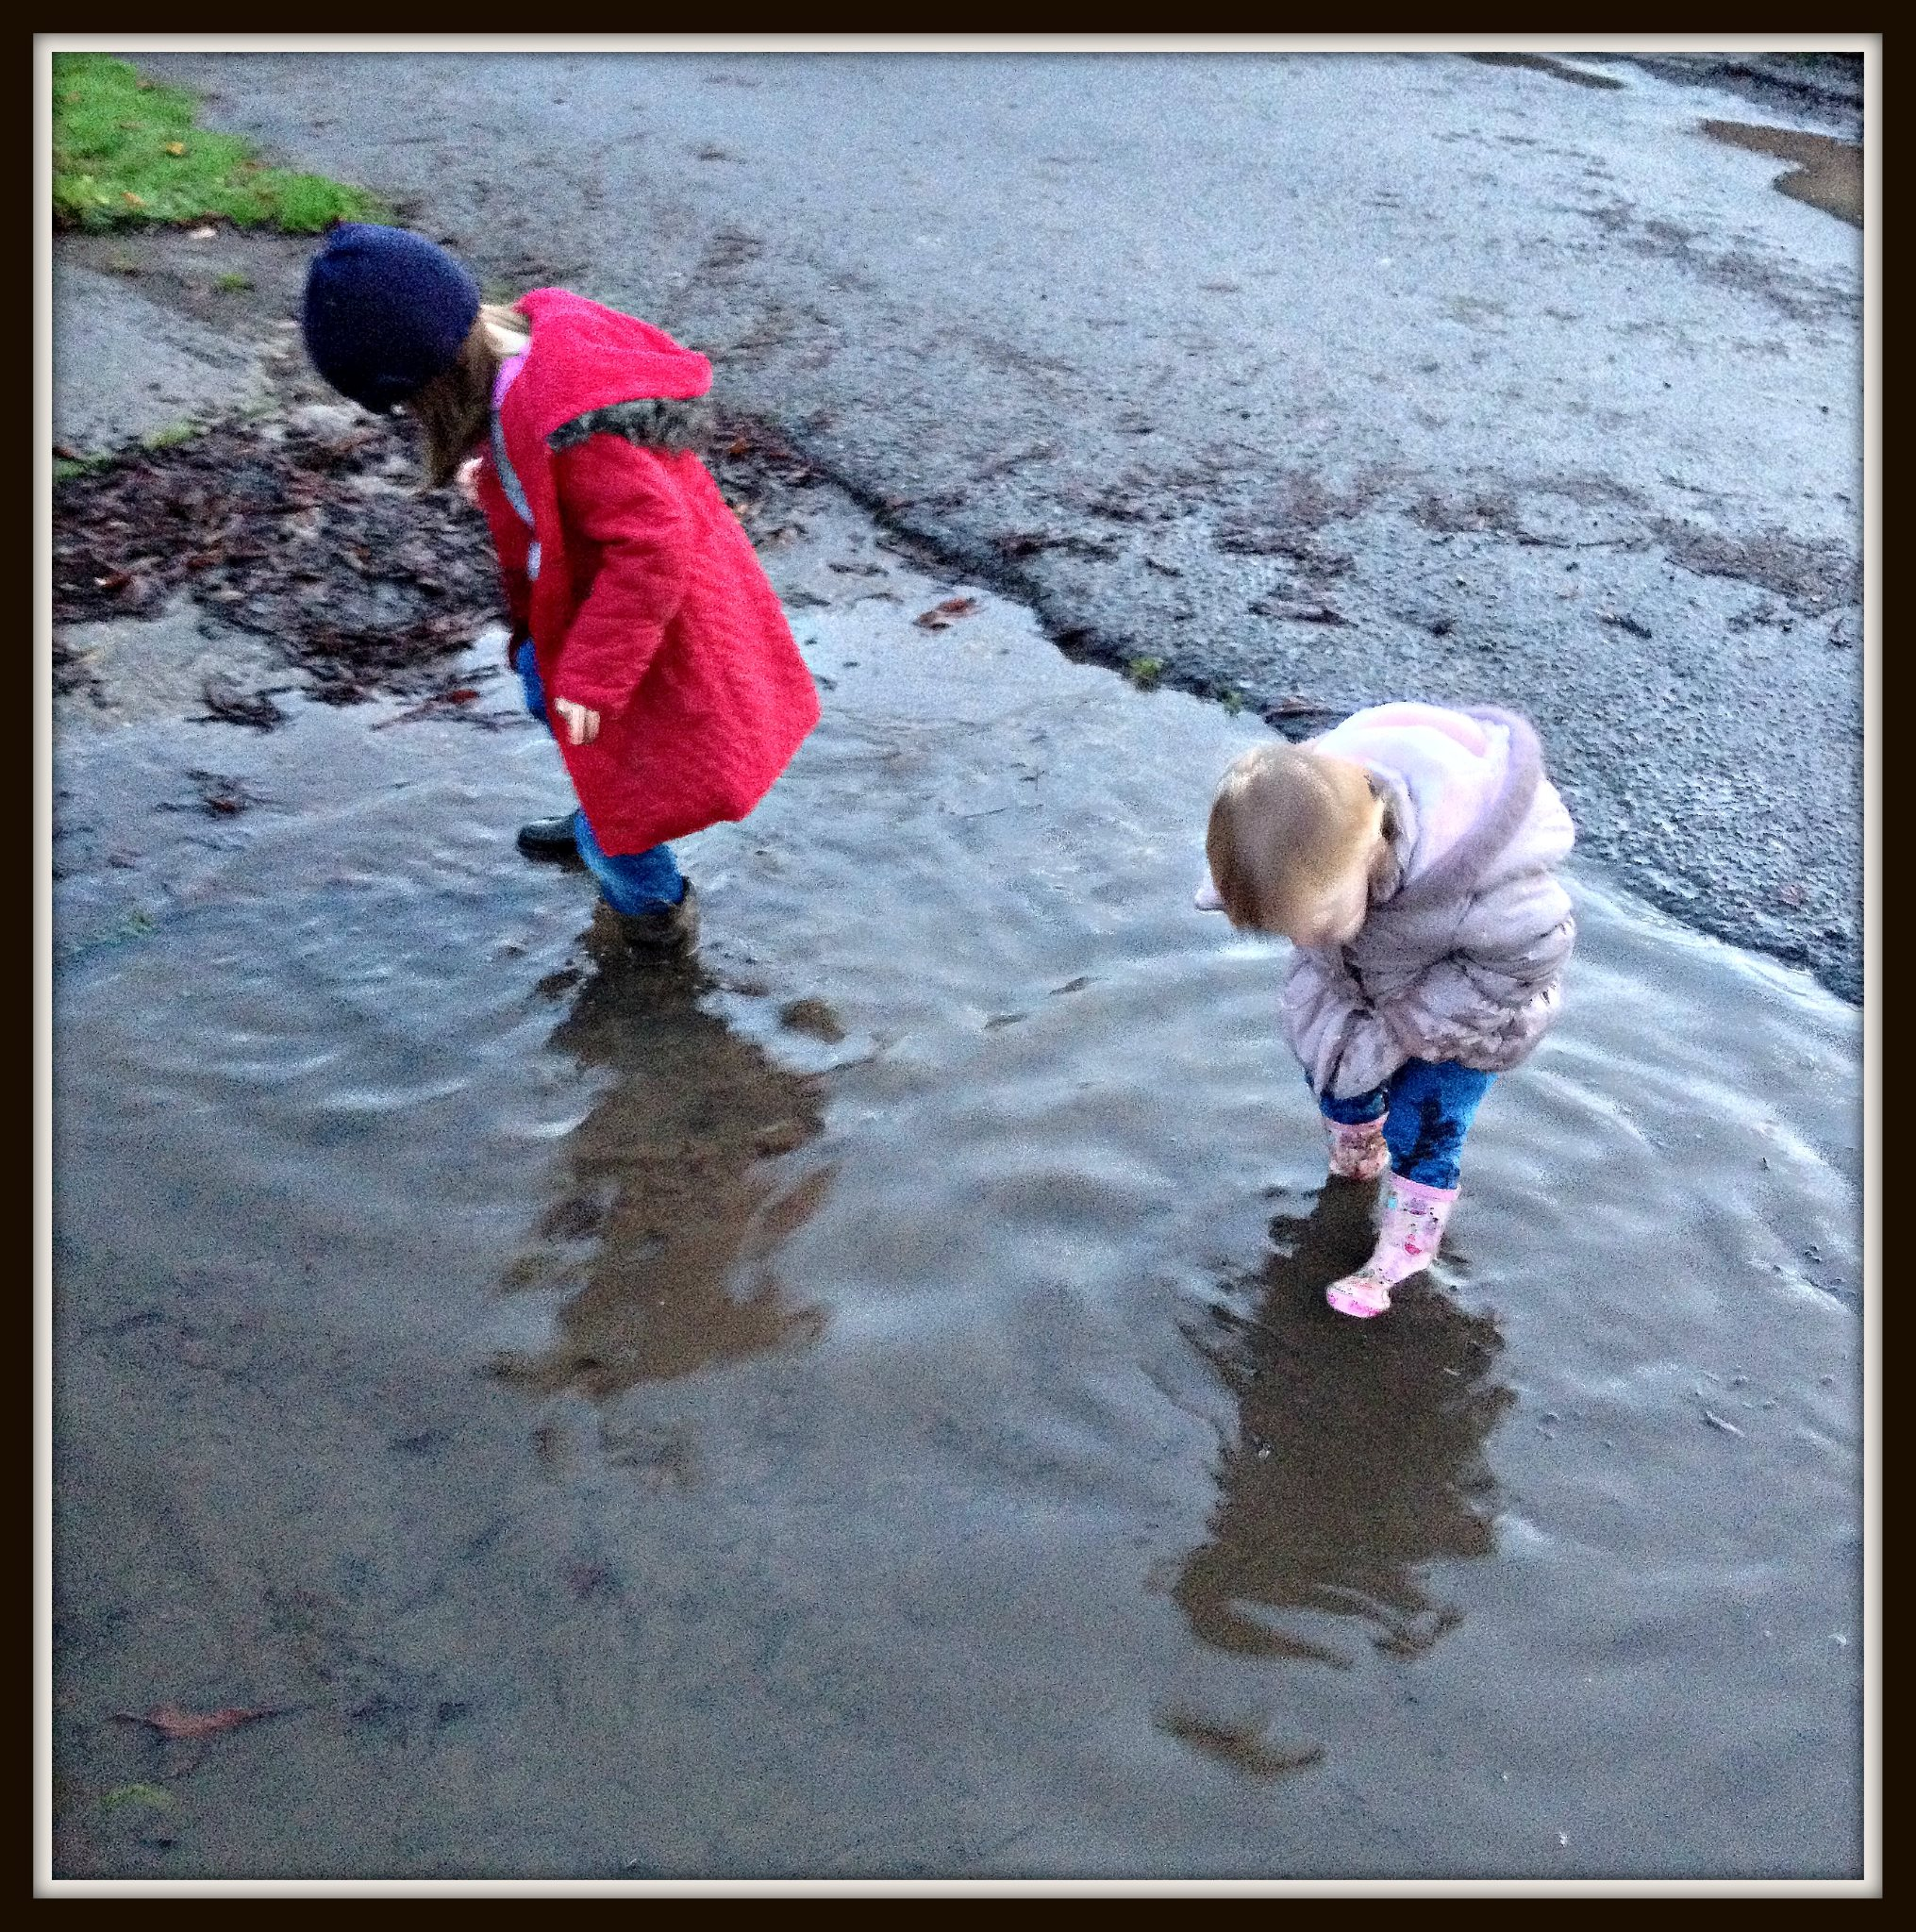 Muddy Puddles, My Sunday Photo, 16/11/2014